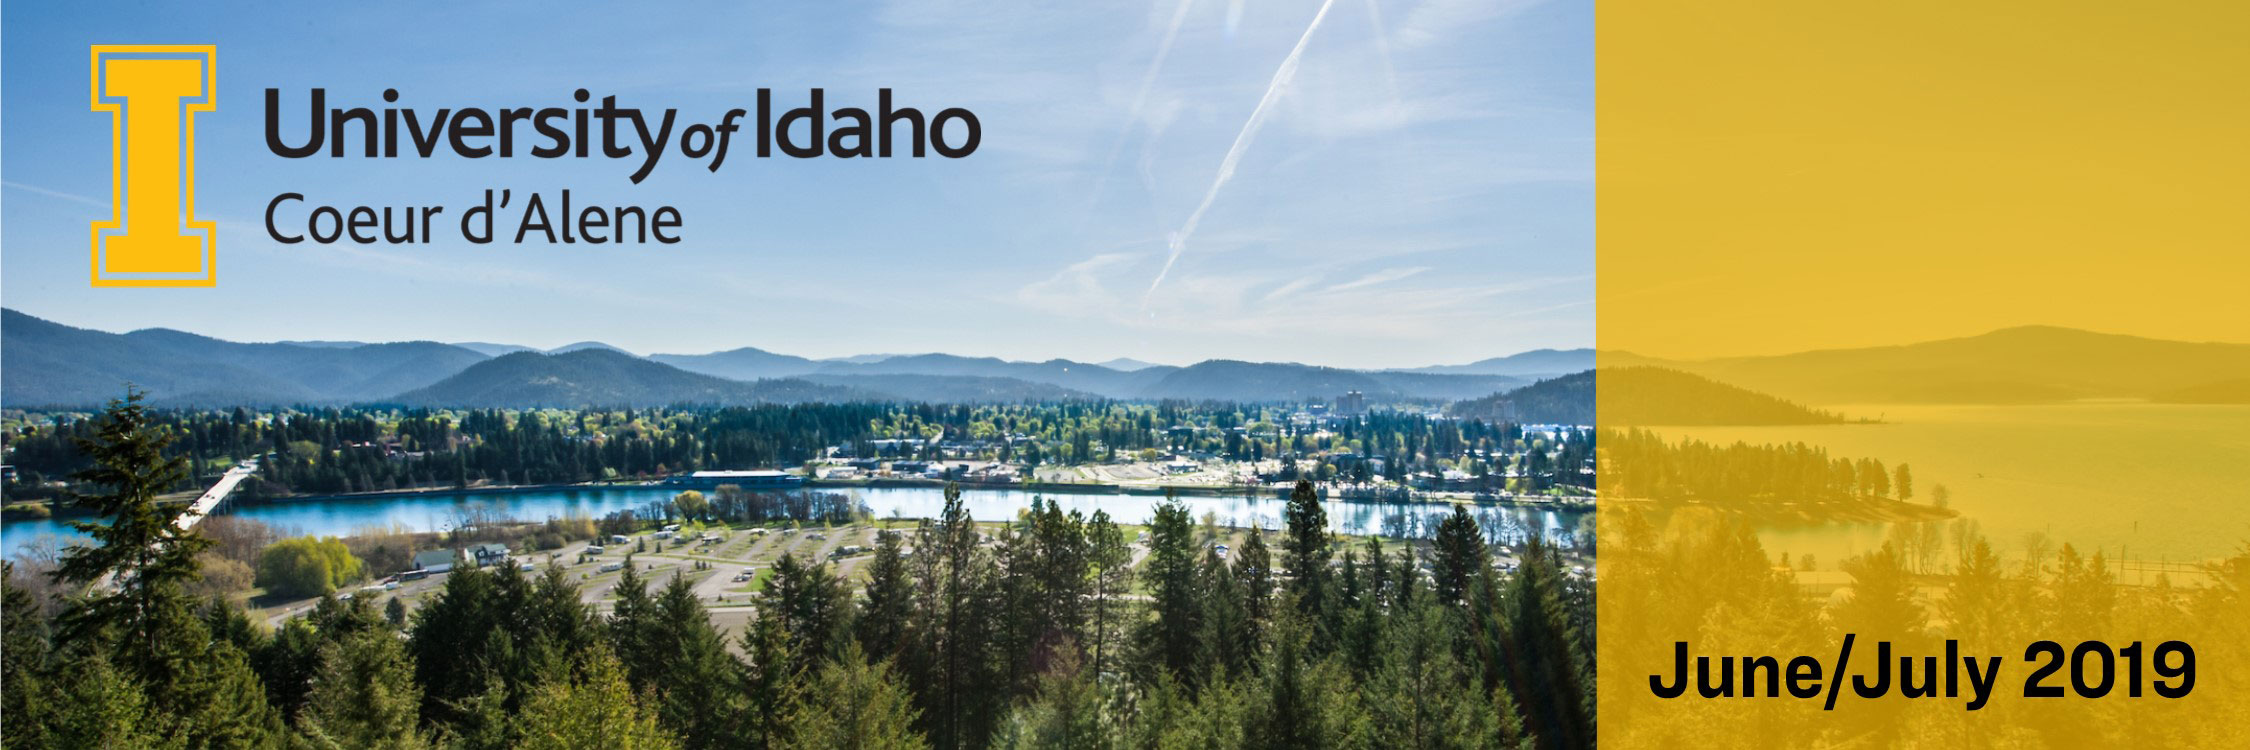 "An aerial picture of Coeur d'Alene overlaid with the text ""June/July 2019"""